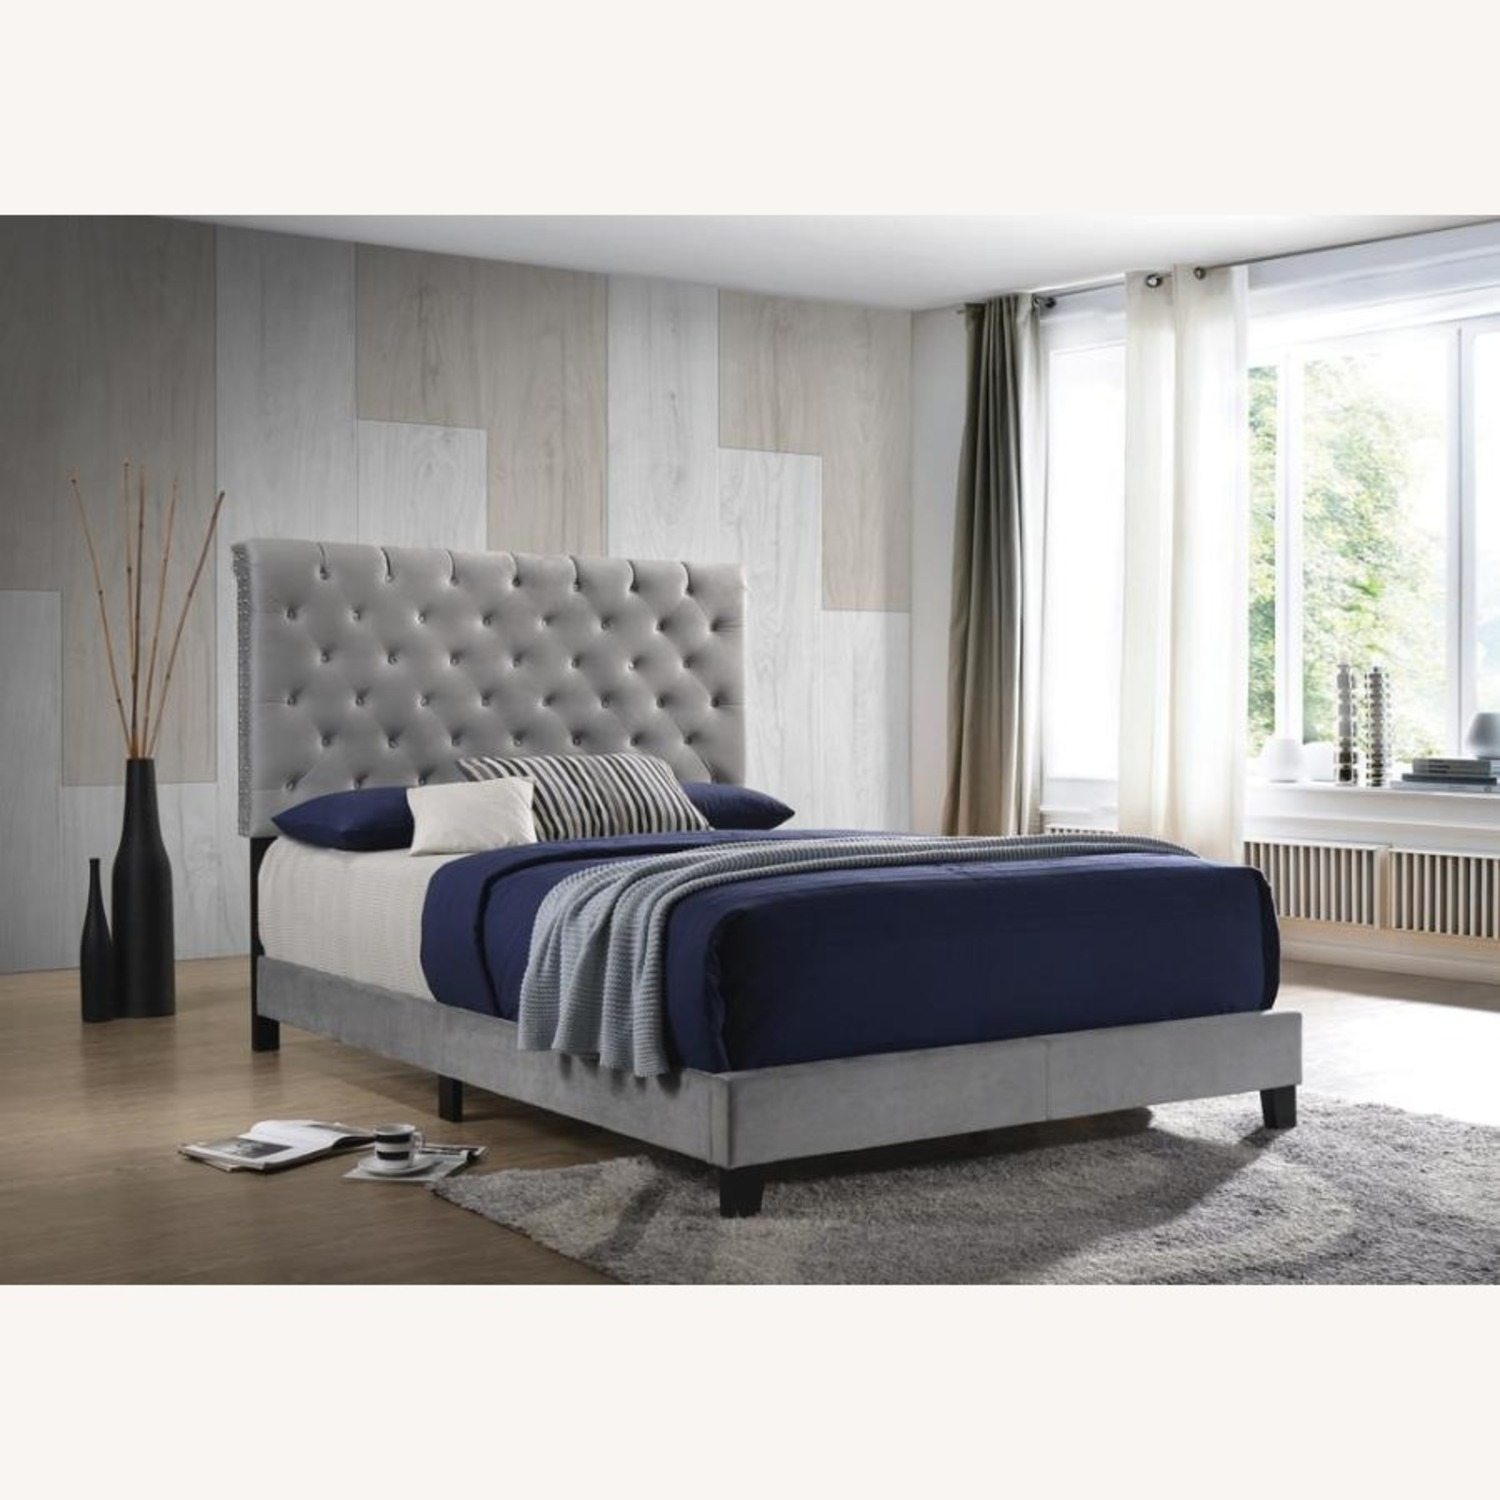 Transitional Style Queen Bed In Grey Velvet Fabric - image-3